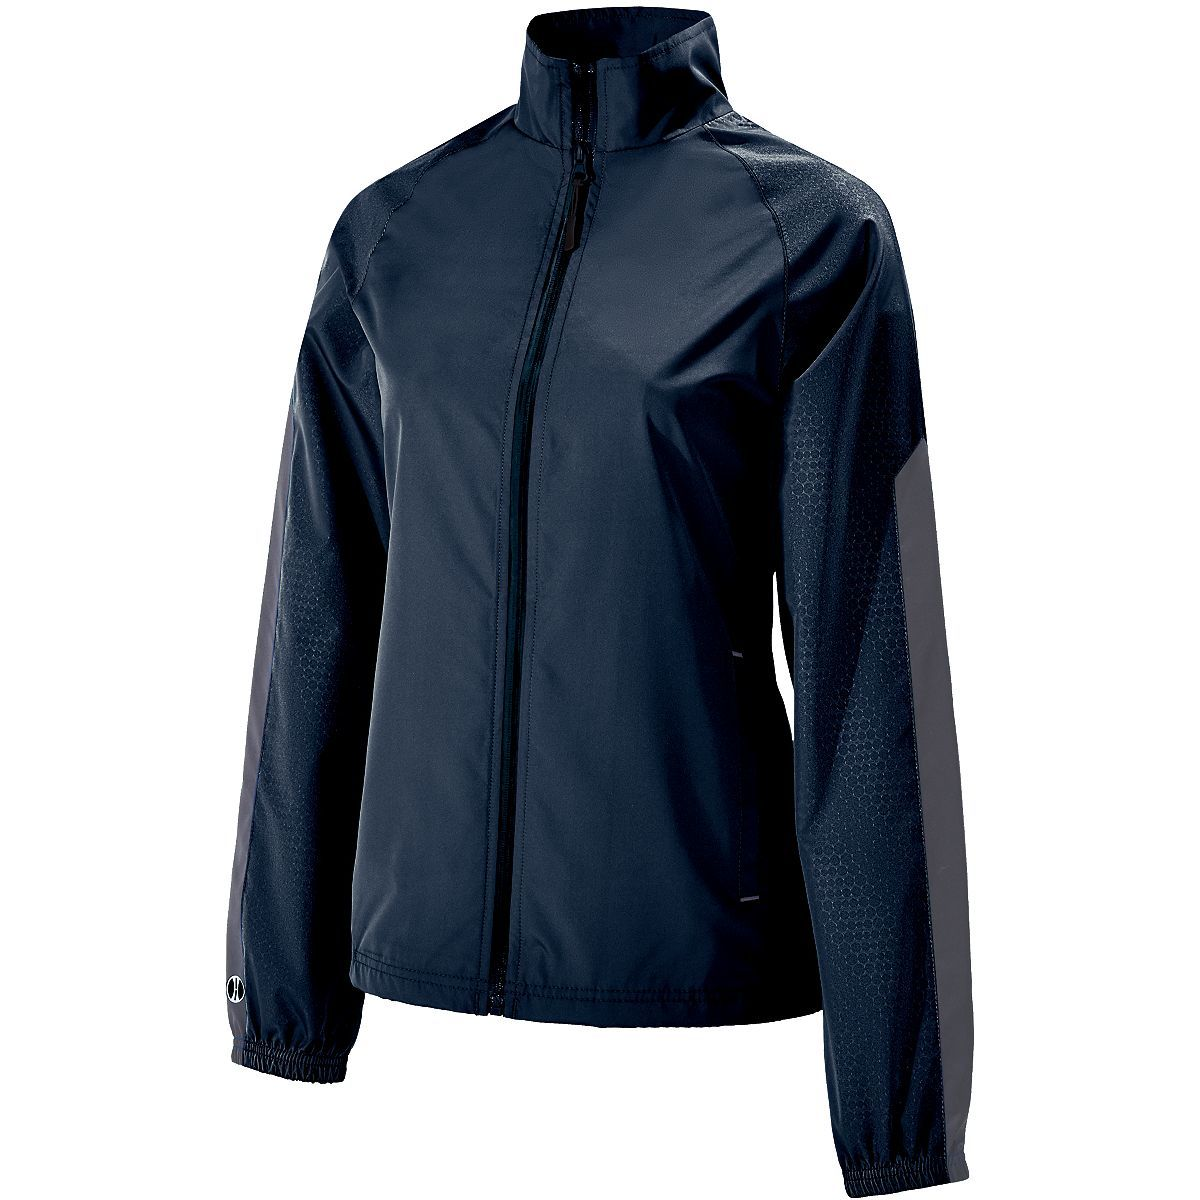 Ladies Bionic Jacket - Navy/carbon